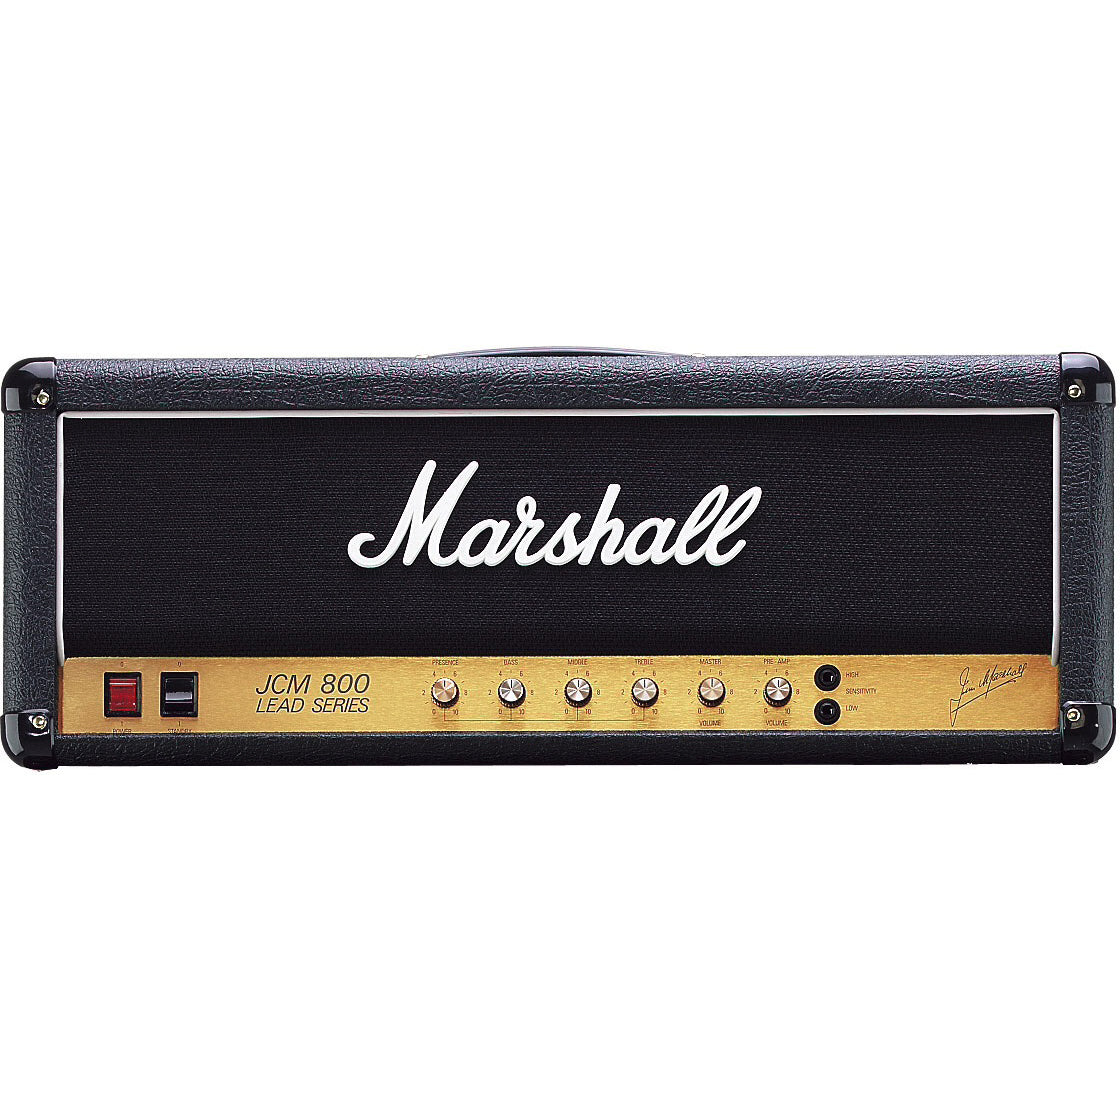 Shop online for Marshall M-2203-01-U JCM800 100w Classic Reissue Guitar Amplifier Head today. Now available for purchase from Midlothian Music of Orland Park, Illinois, USA